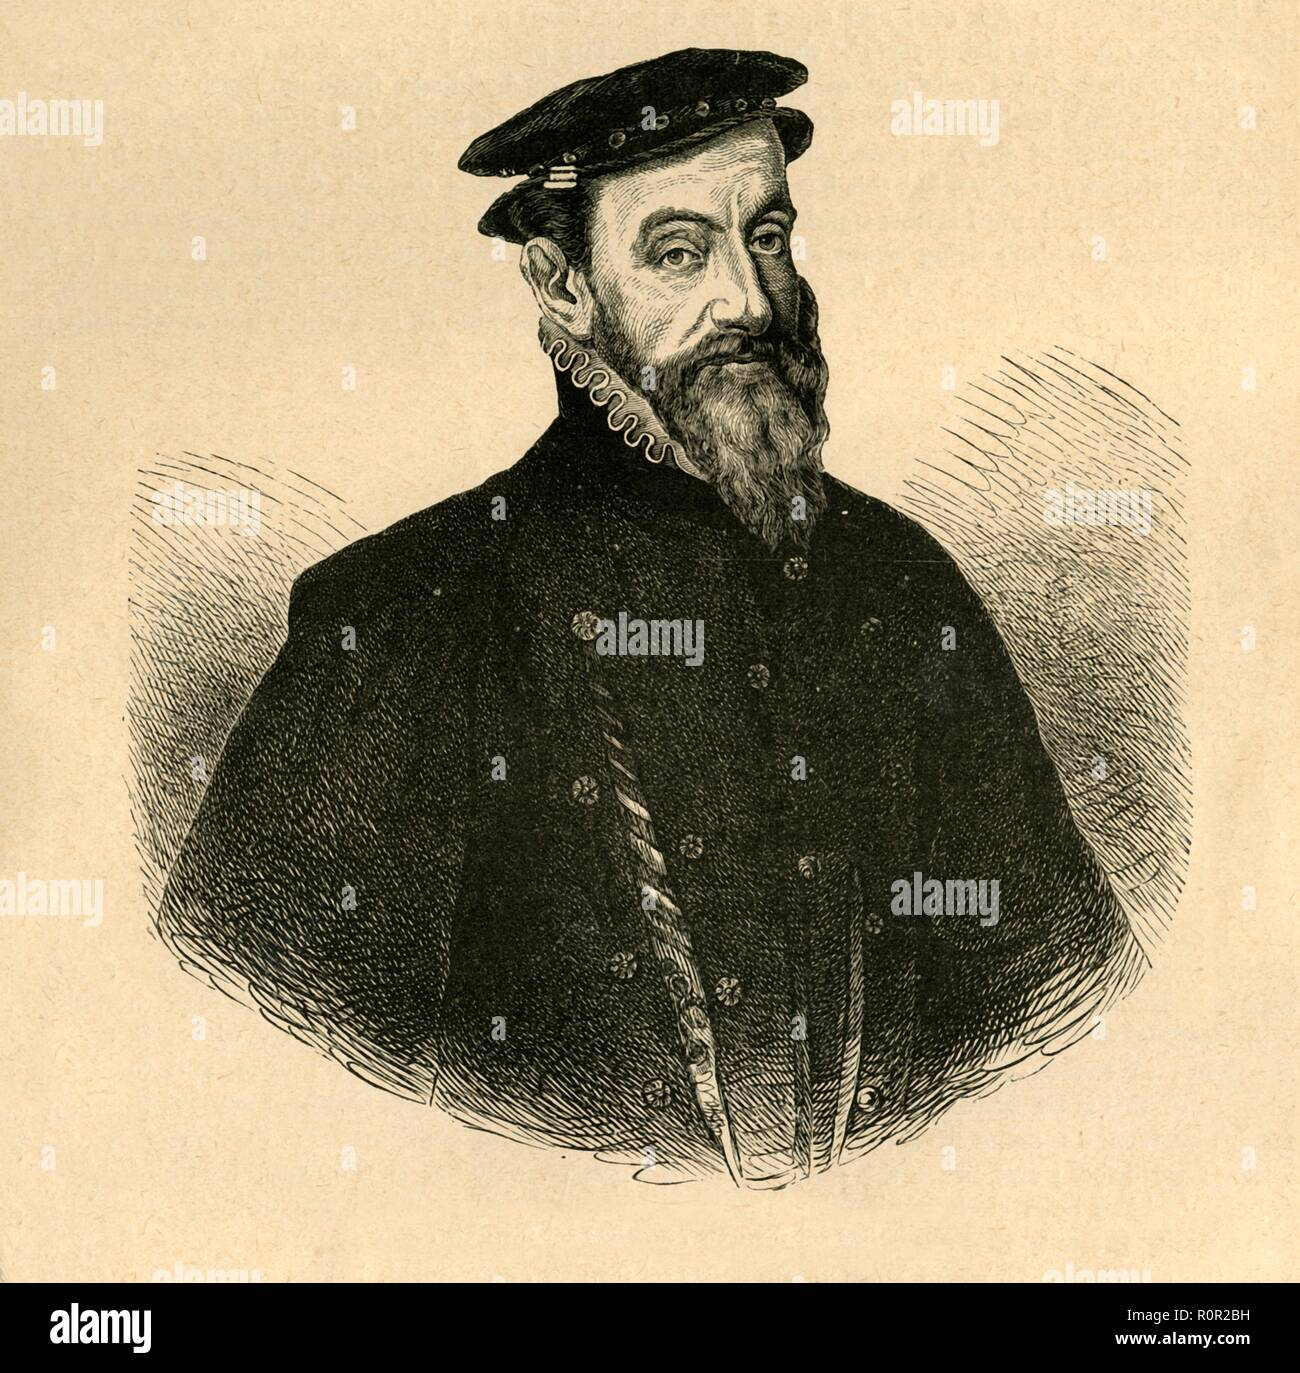 'Sir Thomas Gresham', (1897). English merchant and financier Gresham (c1519-1579) was the founder of the Royal Exchange in London. From Old and New London, Volume I, by Walter Thornbury. [Cassell and Company, Limited, London, Paris & Melbourne, 1897] Stock Photo